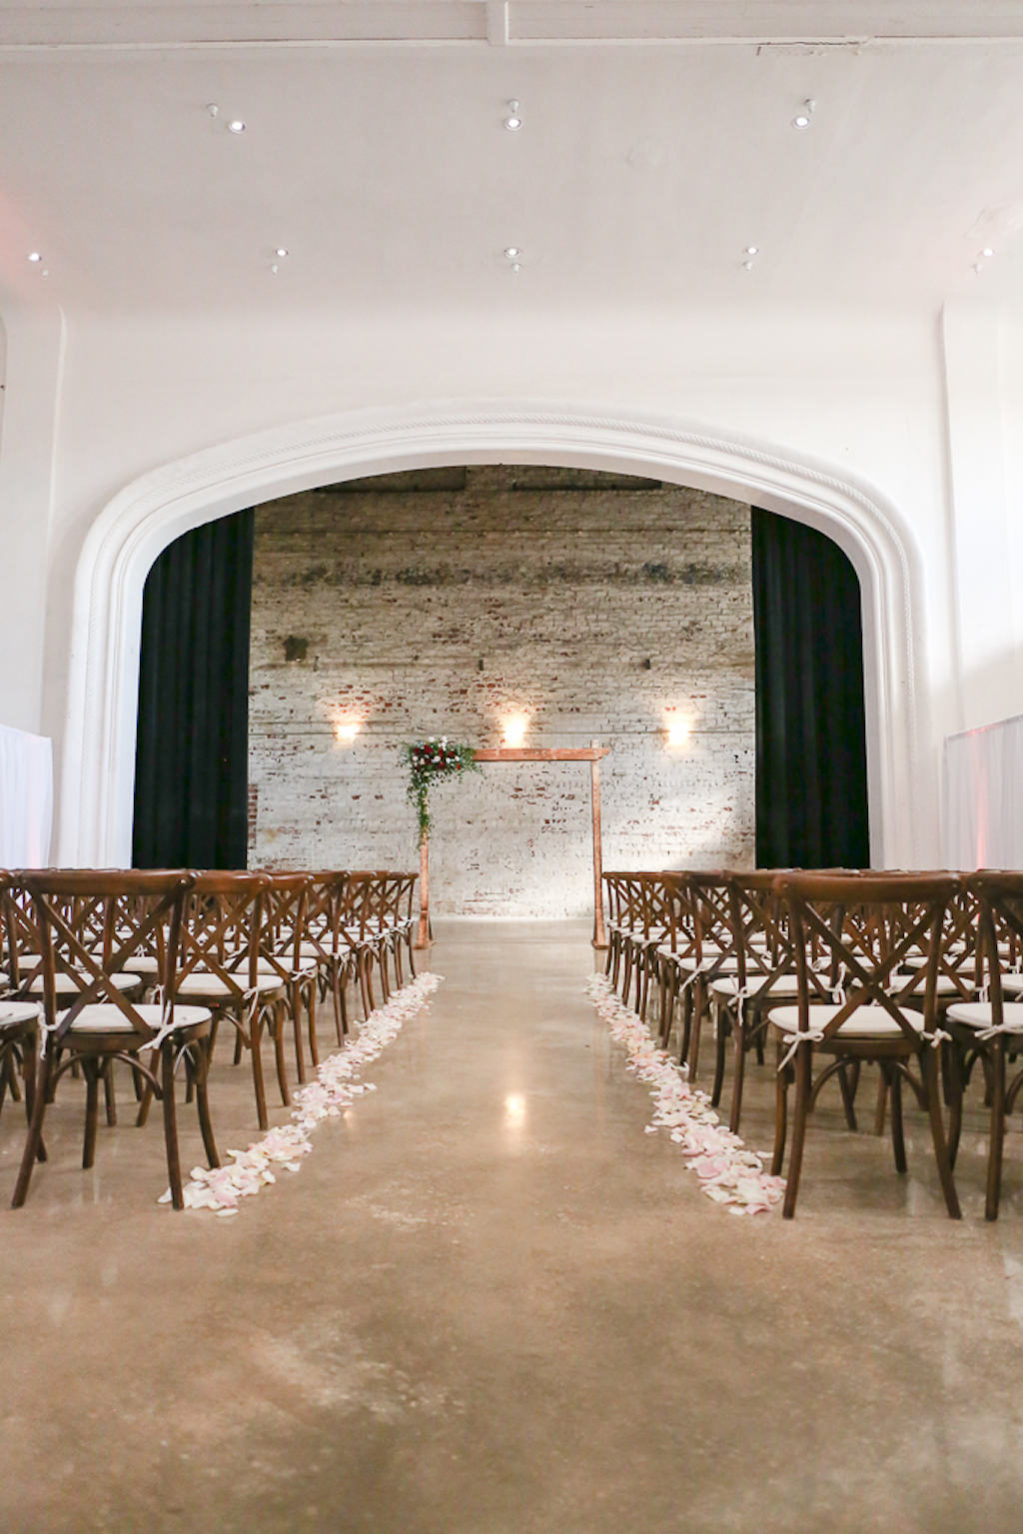 Industrial Elegant Wedding Ceremony Decor, White Brick Wall Backdrop, Wooden Chiavari Chairs, Blush Floral Petal Aisle, Wooden Arch with Greenery Accent | Tampa Wedding Photographer Lifelong Photography Studios | Tampa Wedding Planner Breezin' Weddings | Tampa Bay Wedding Venue Rialto Theatre